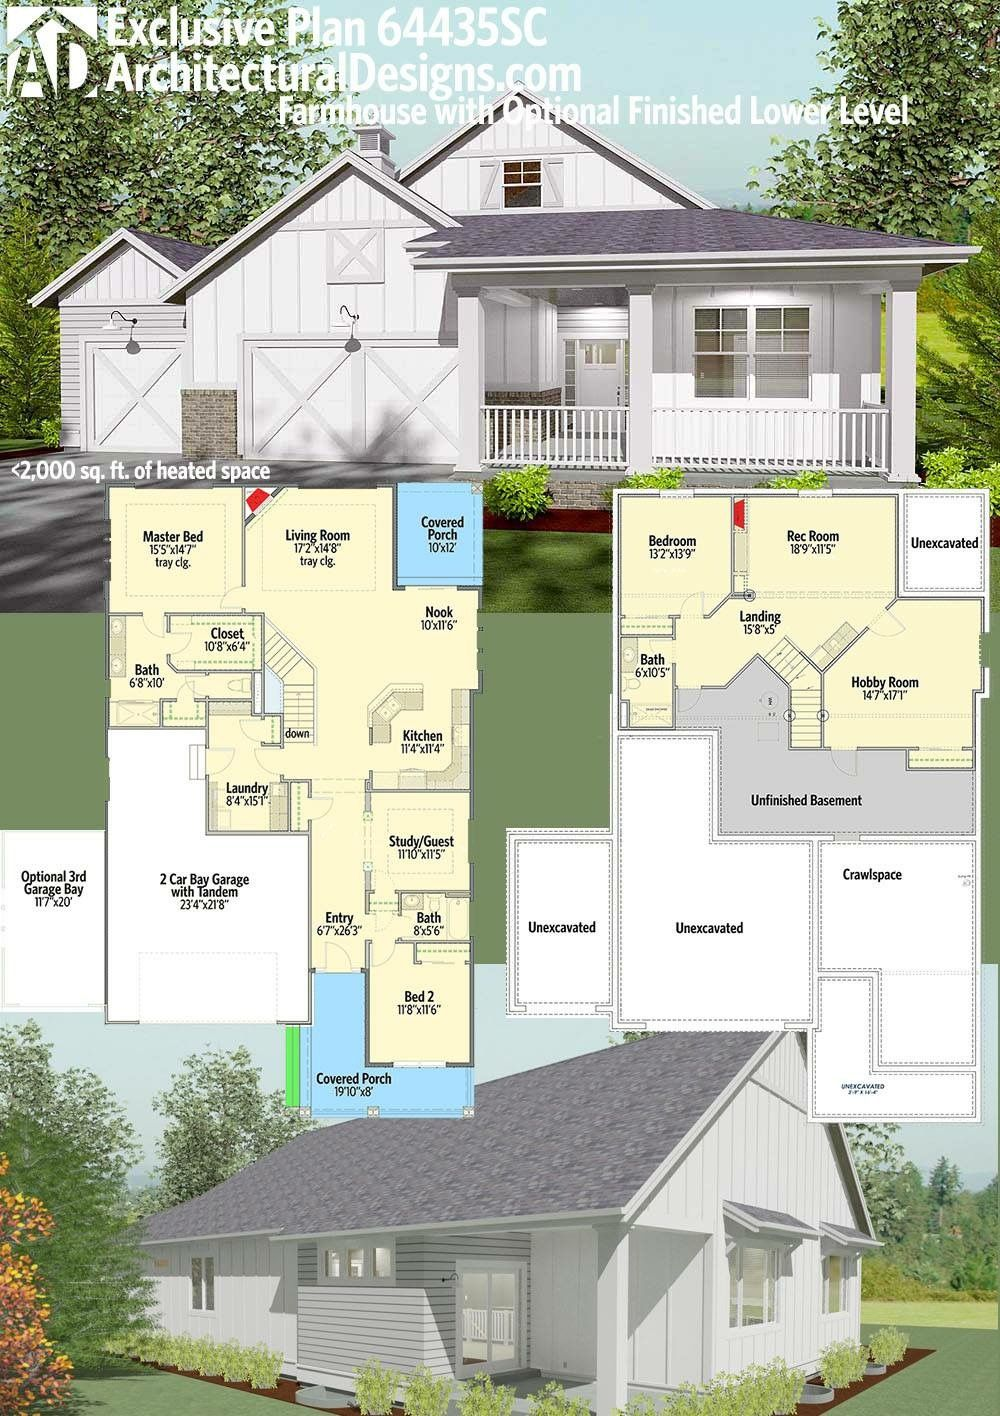 Plan 64435SC Modern Farmhouse Plan with Optional Finished